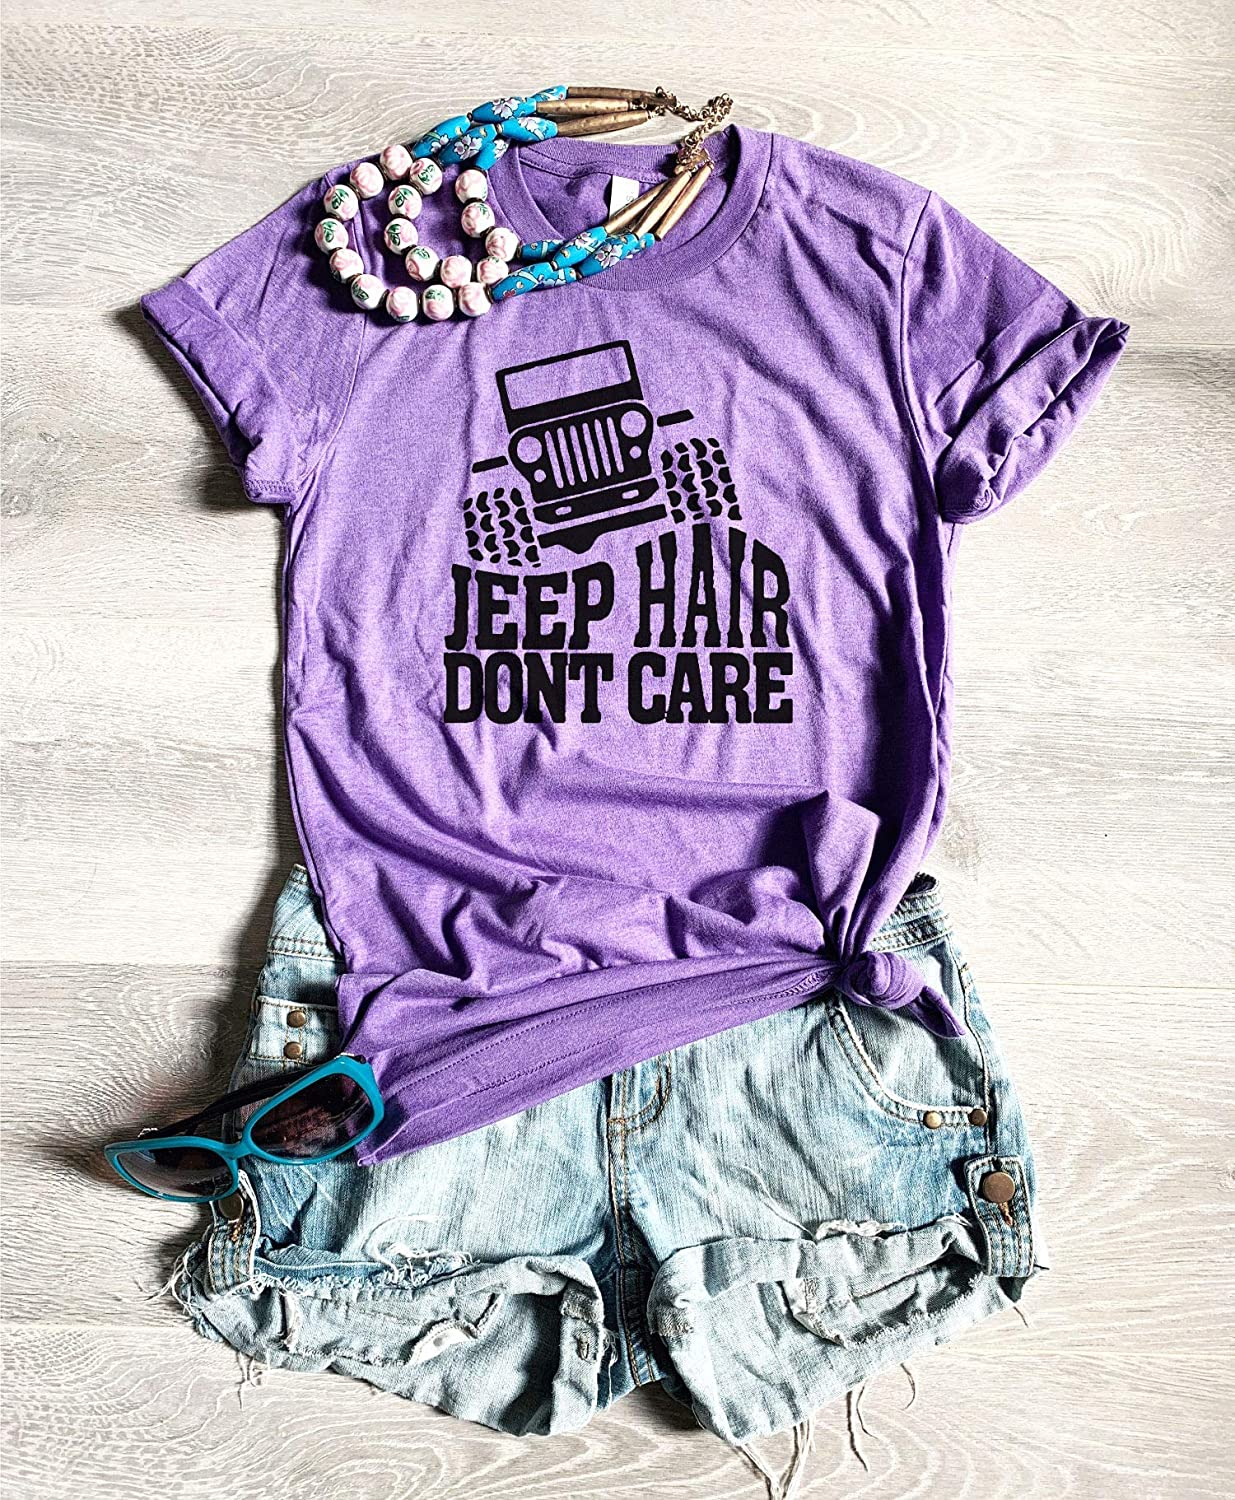 Jeep Hair Don't Care. Summer Road T Shirt. Unisex Fit. T Shirt. Vacation Trip Shirt. Free Shipping. Screen Printed With Eco Ink. Unisex Fit. Bella-Canvas Shirt.